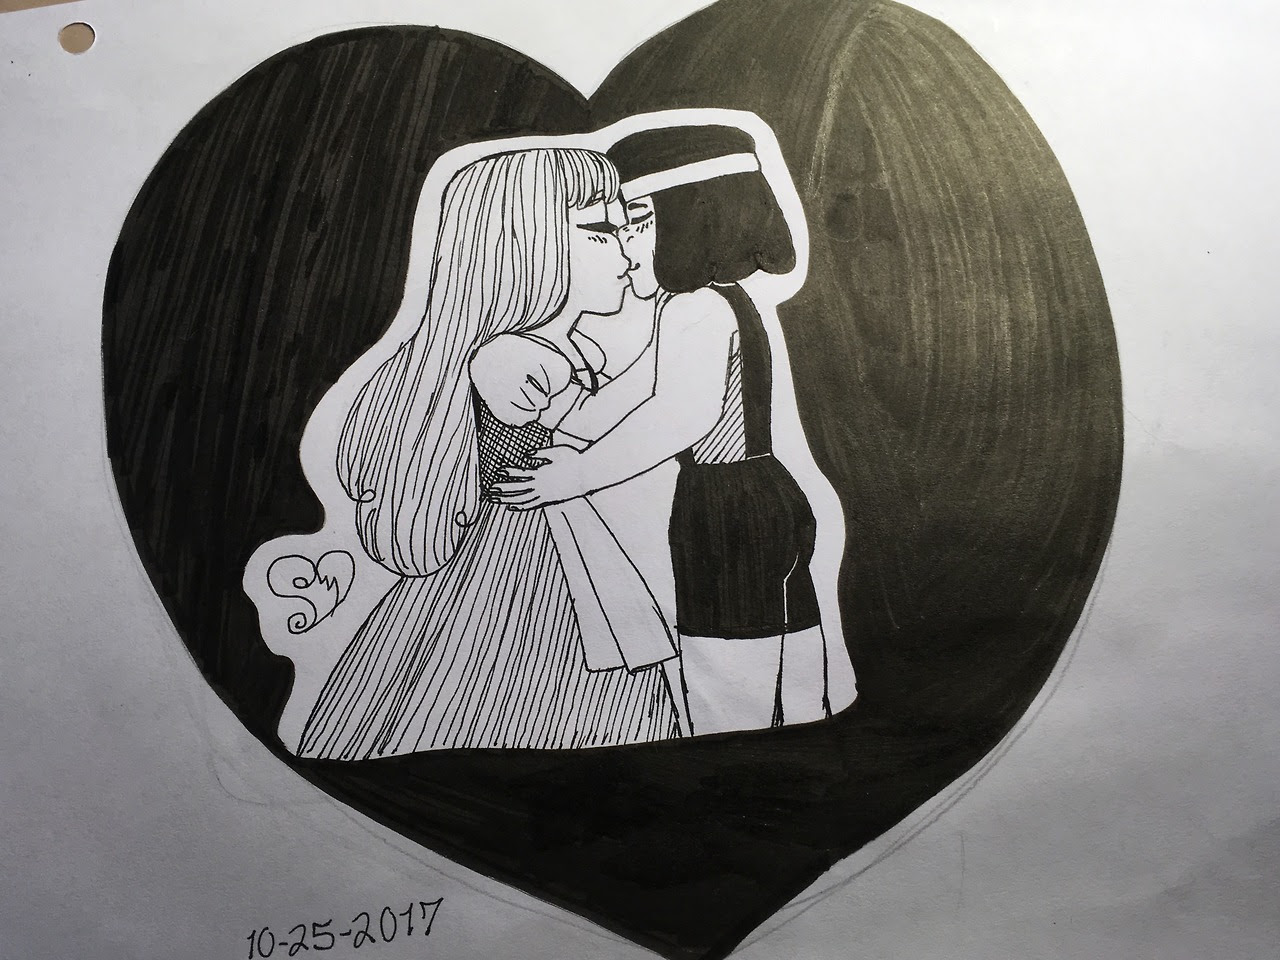 Inktober ~ Day 25: Ship It didn't specify whether it wanted a boat or a relationSHIP so I just did my otp.